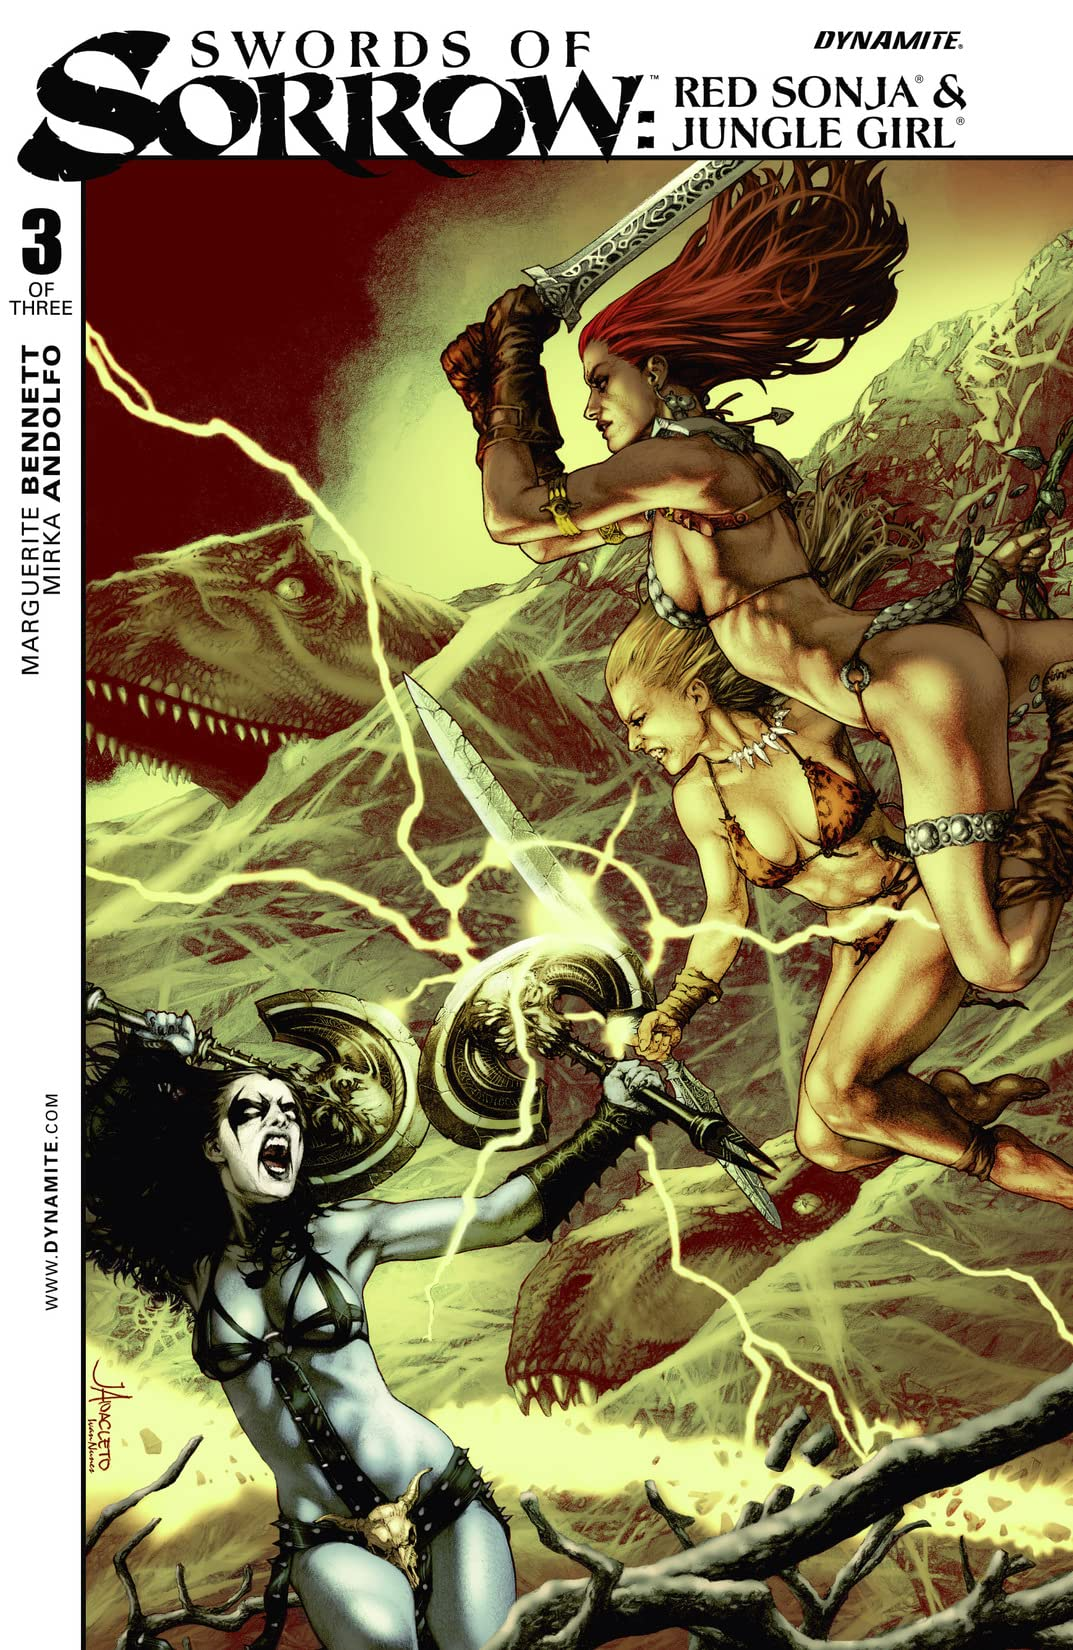 Swords of Sorrow: Red Sonja & Jungle Girl #3 (of 3): Digital Exclusive Edition